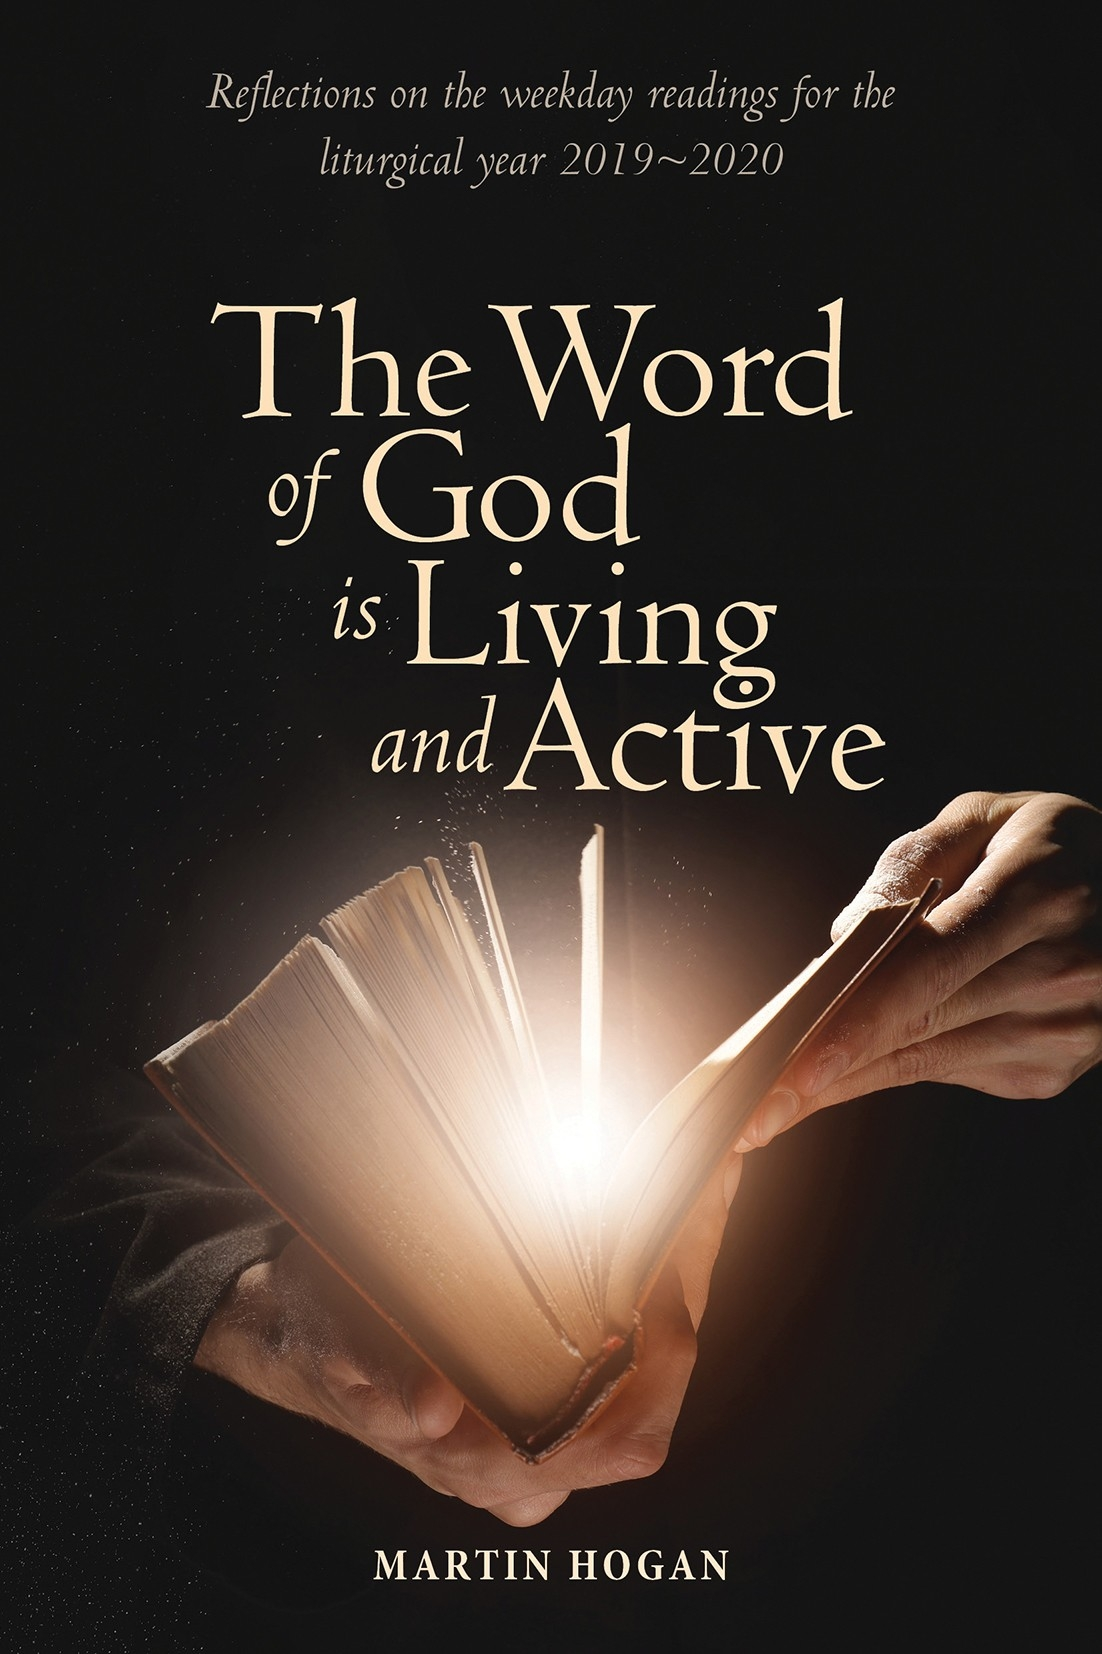 The Word Of God Is Living And Active: Reflections On The Weekday Readings  For The Liturgical Year 2019-2020  Advent Scriptures 2020